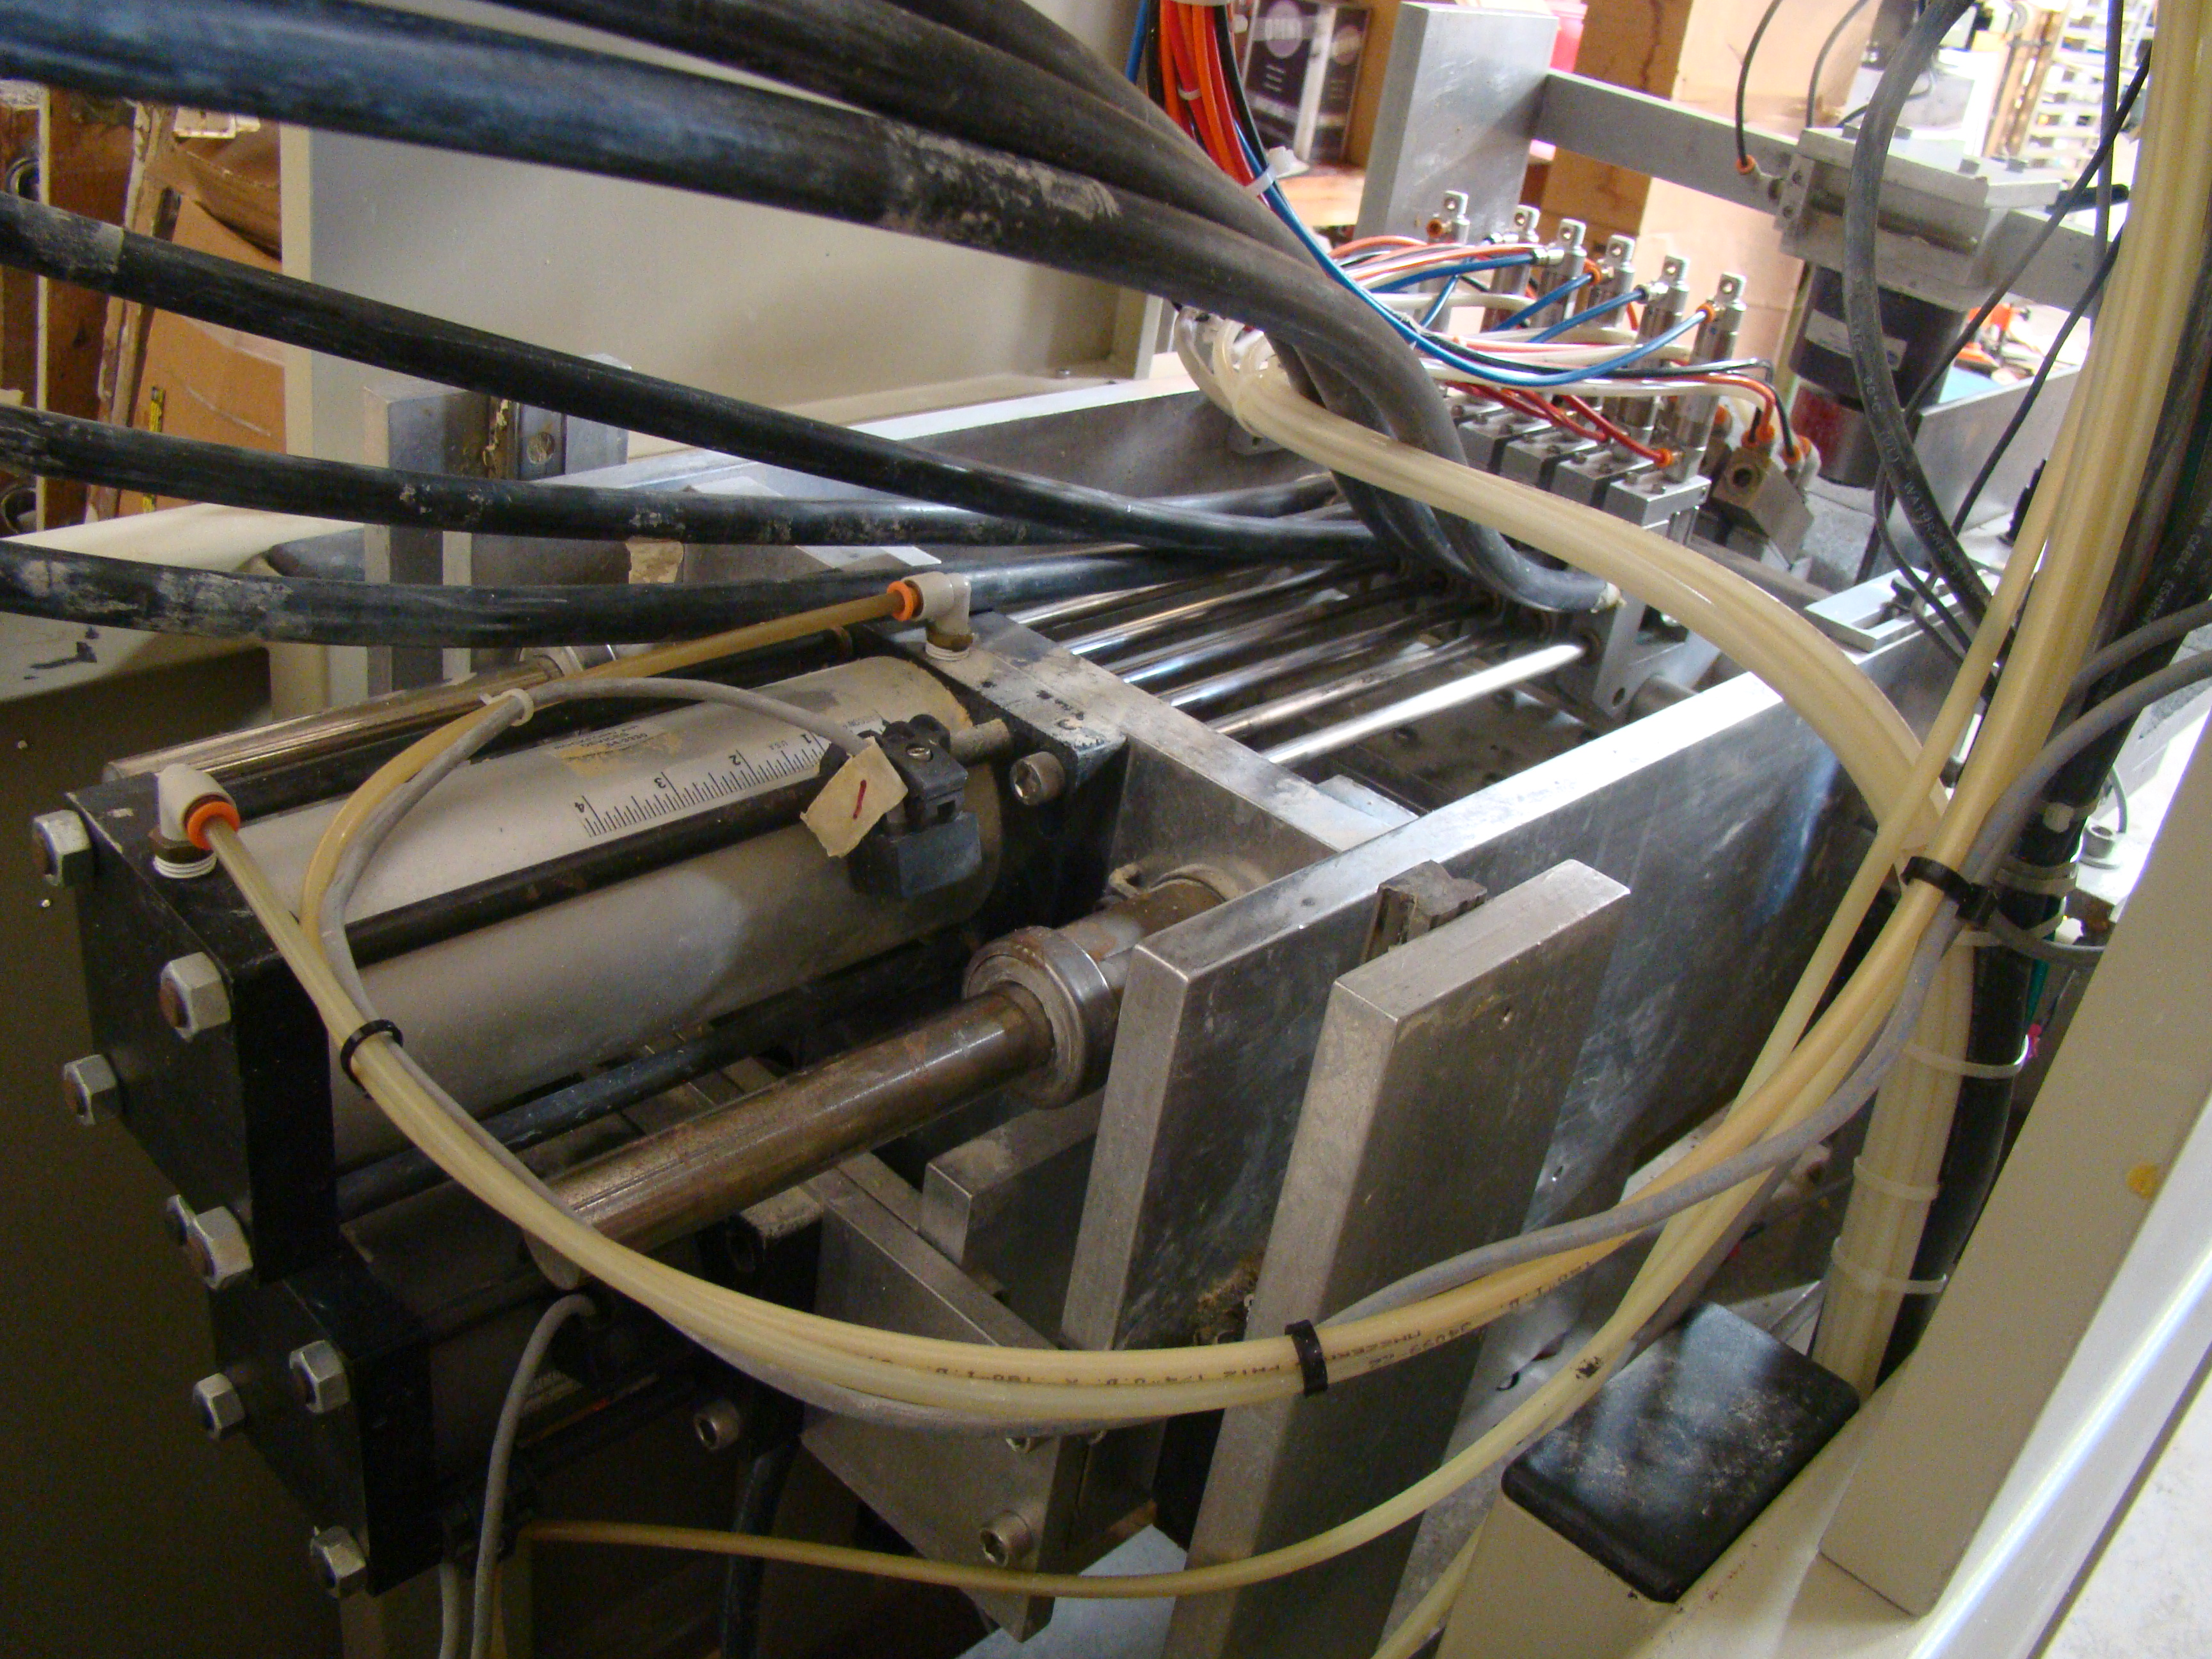 ACCU-Systems 366 Dowel Insertion Machine with Foot Pedal, Vibratory Bowl Feeders, Glue Pot 220 - Image 4 of 8